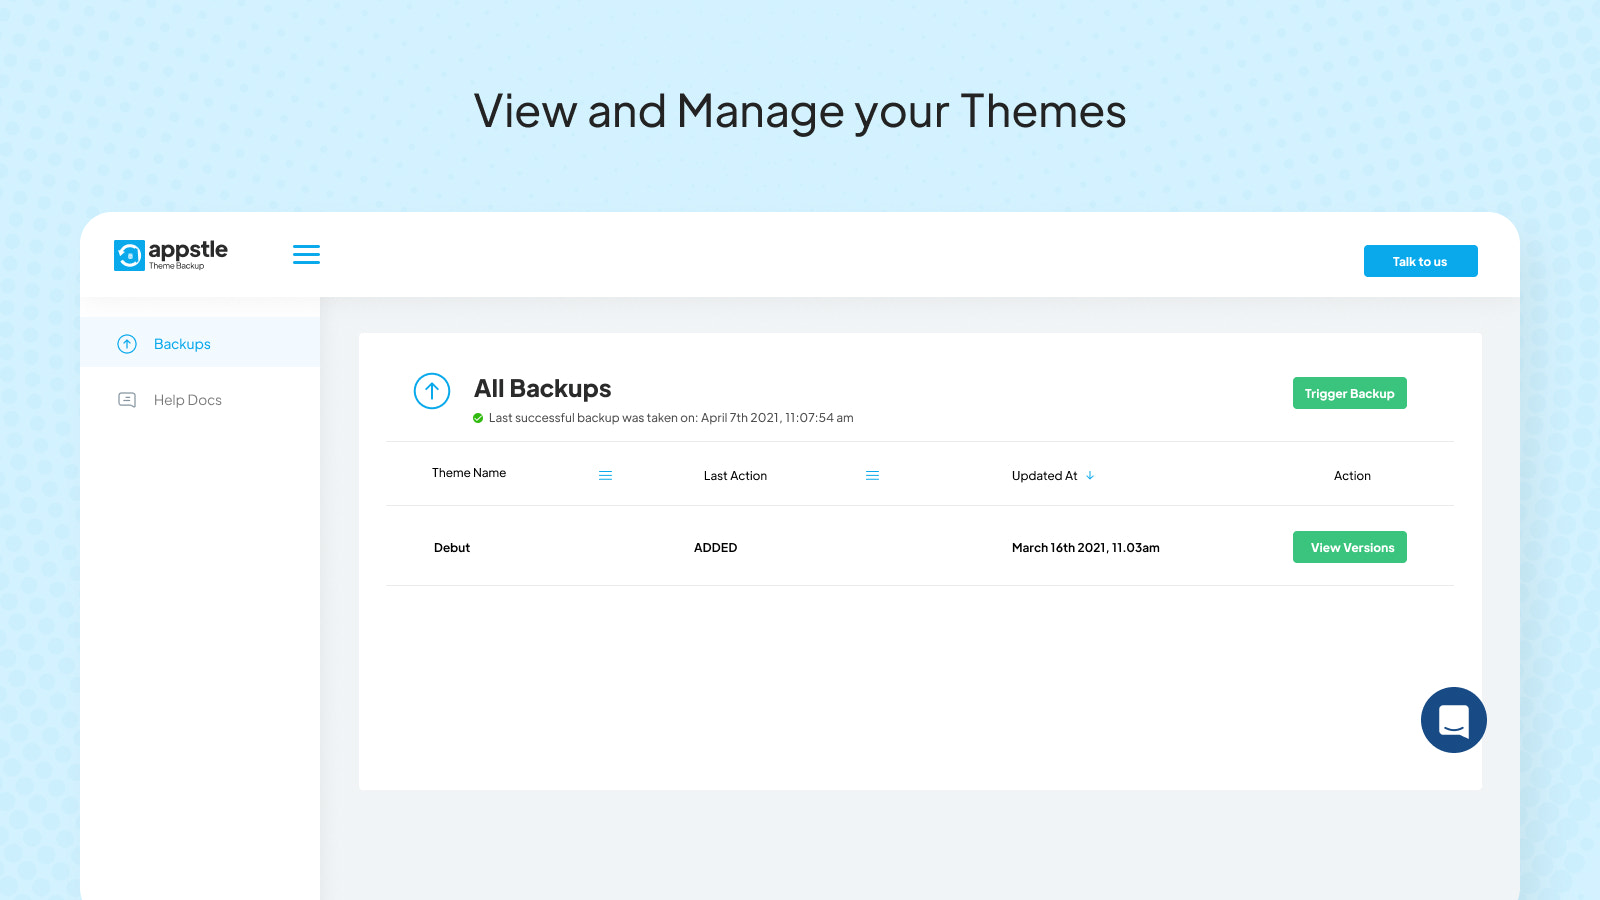 View and Manage your Theme